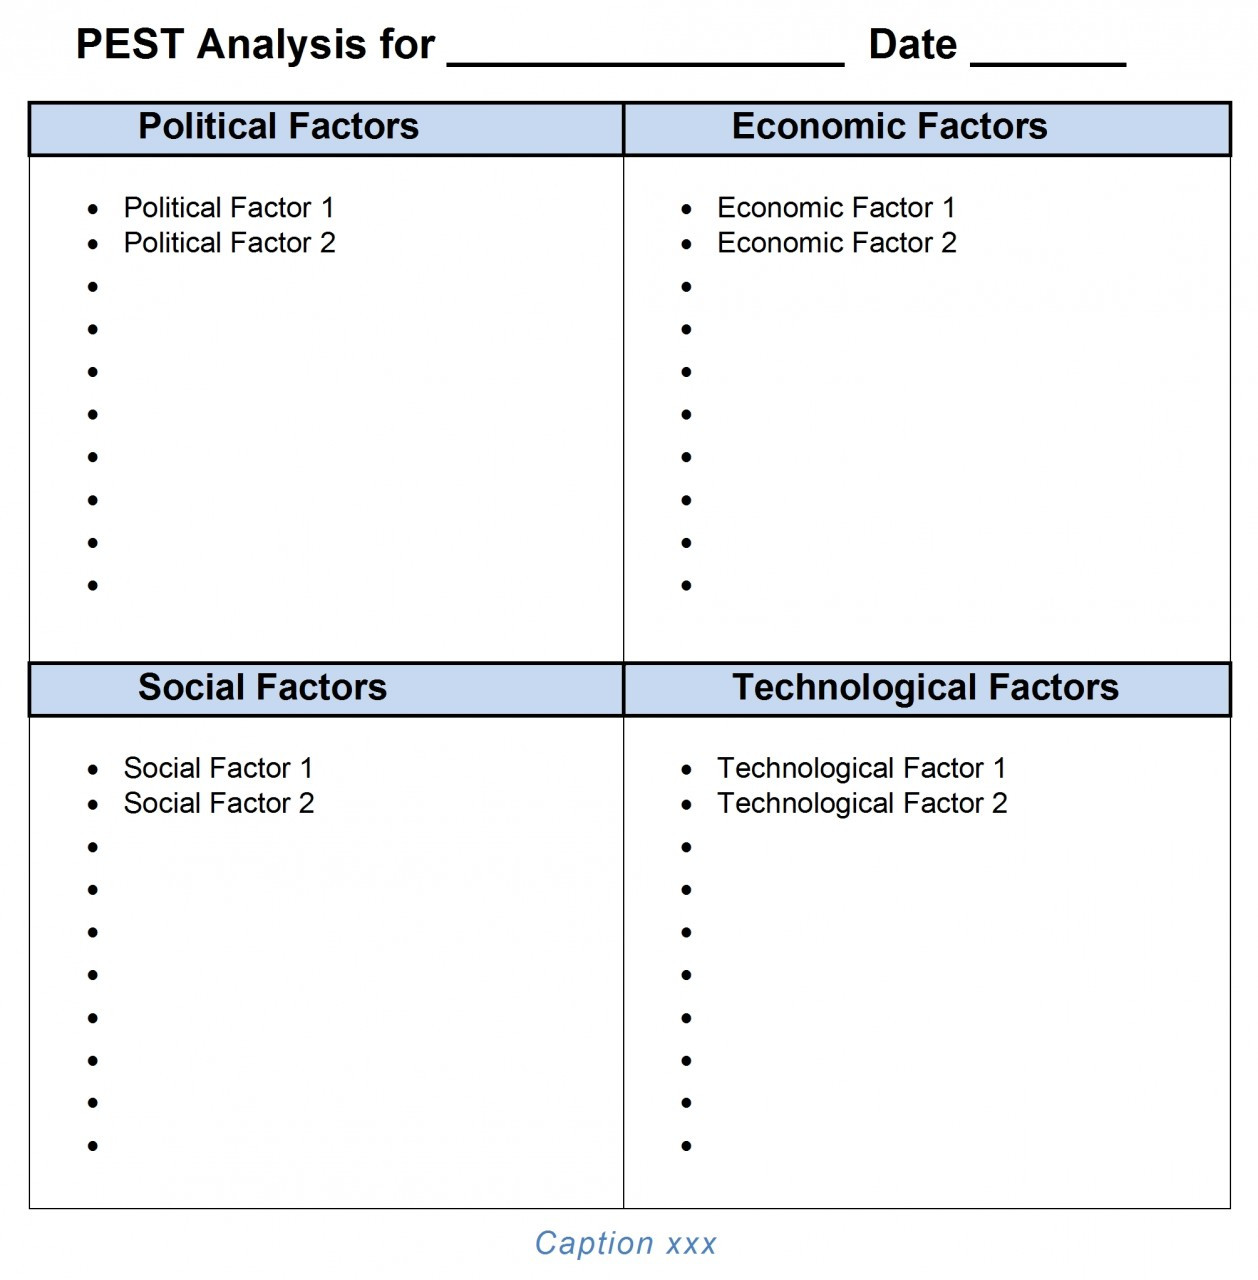 SWOT Analysis Template Word http://www.businesstoolsstore.com/pest ...